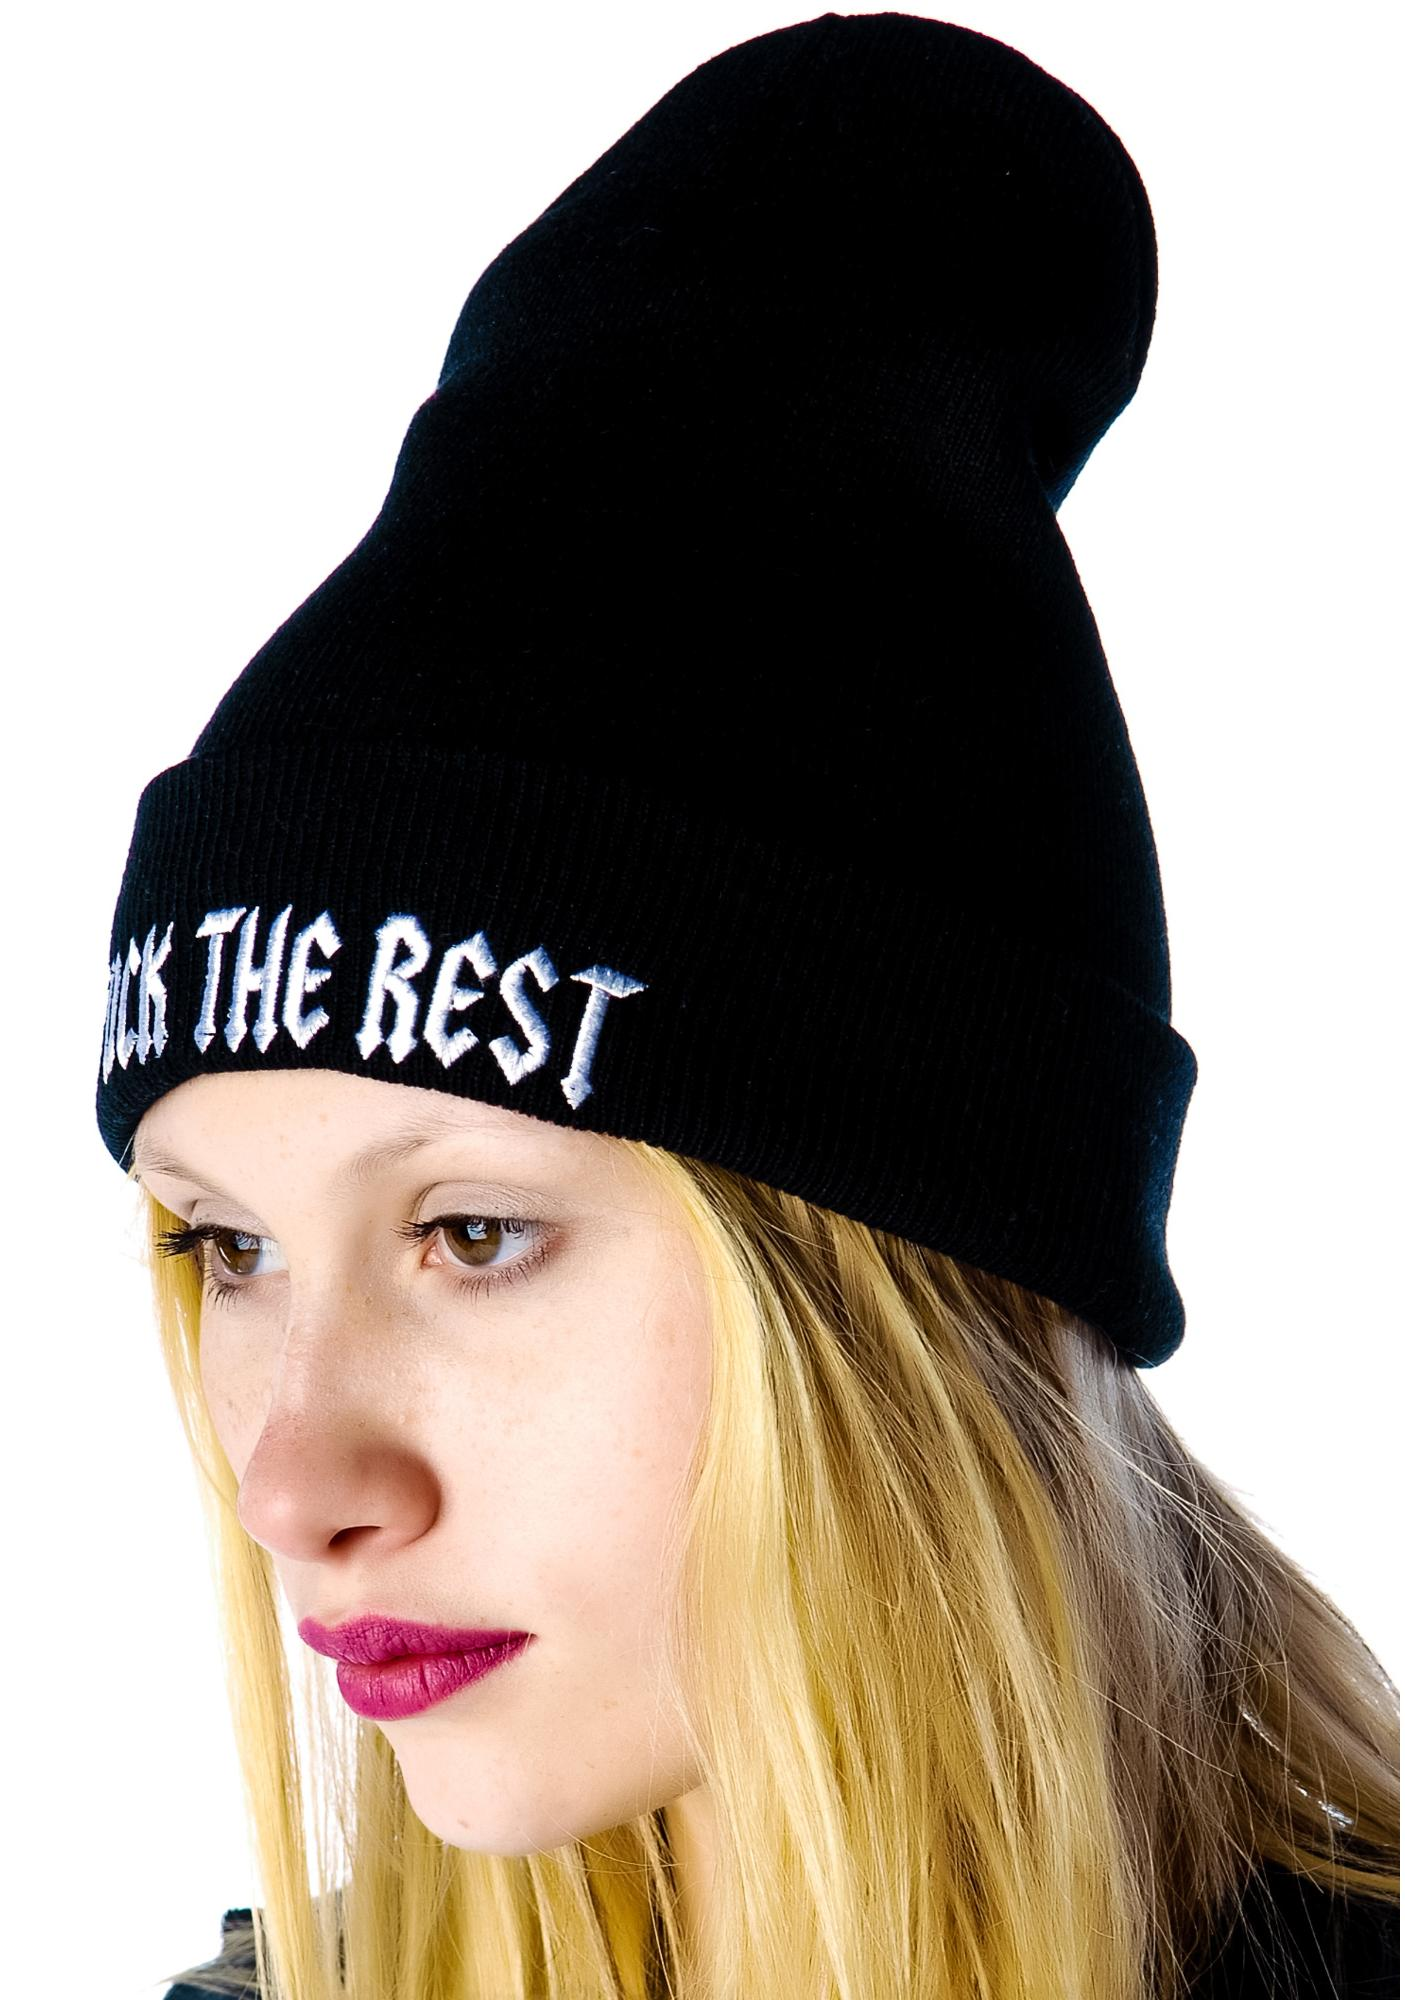 HLZBLZ x Belle of the Brawl F the Rest Beanie